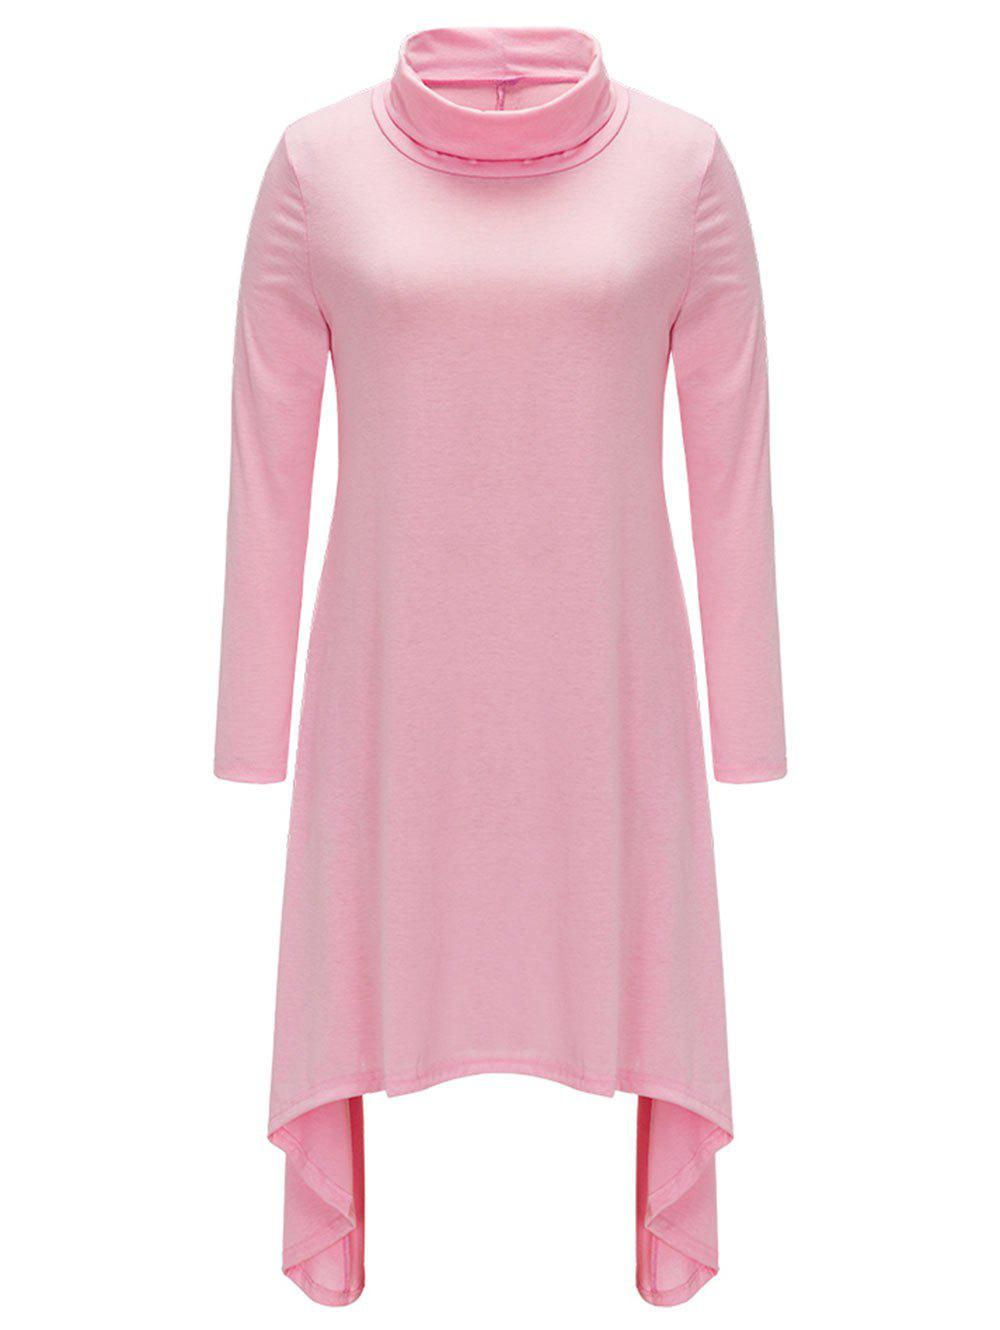 Fashion Turtle Neck Asymmetric Casual Dress